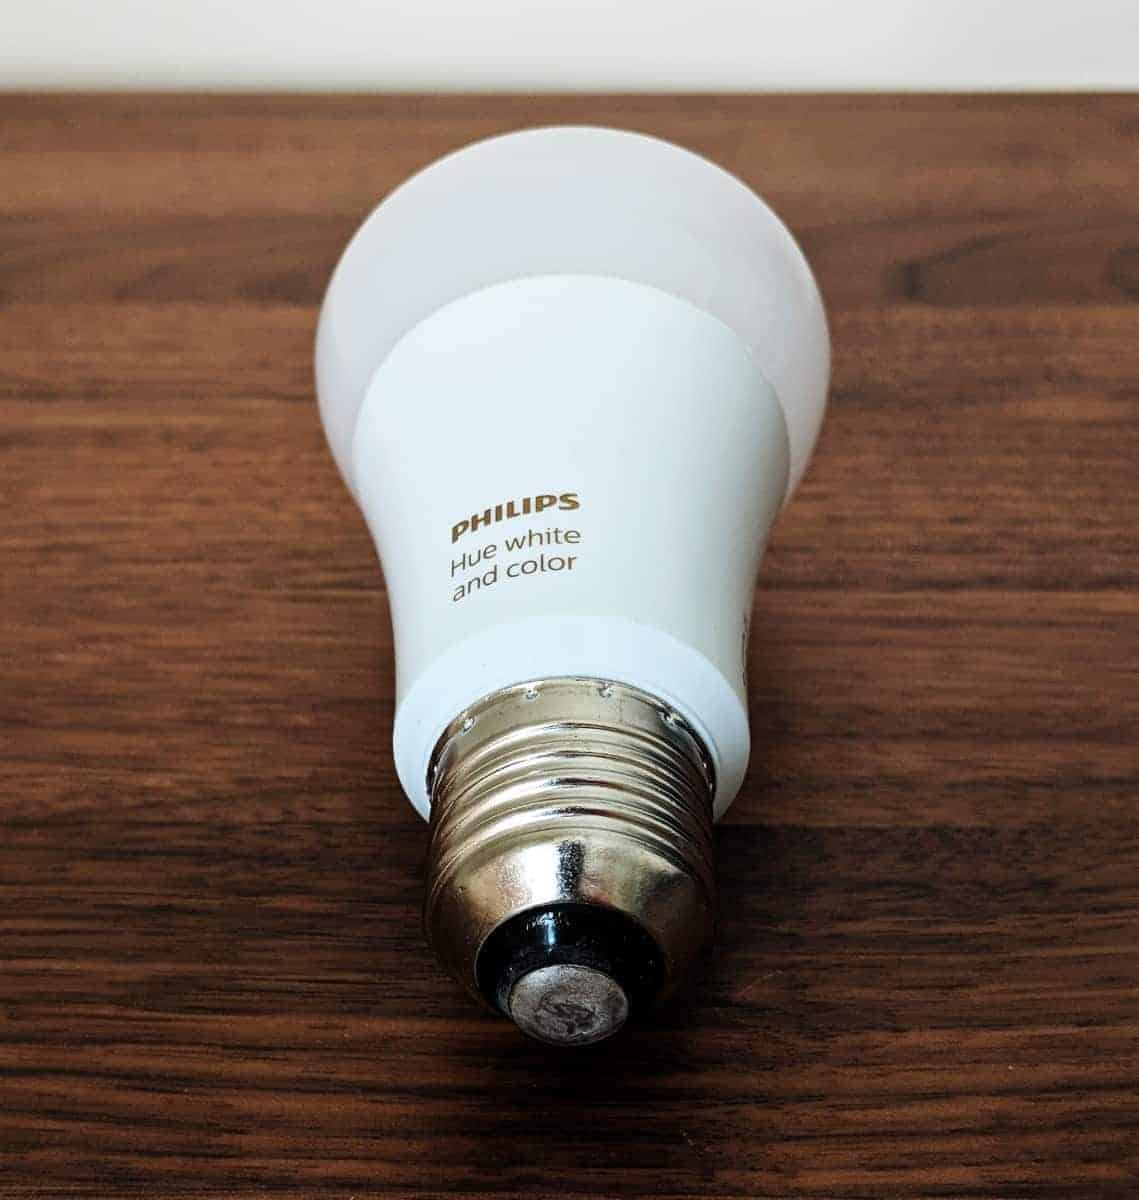 Philips-Hue-Starter-kit-Photos-09 Philips Hue Smart Lighting Review